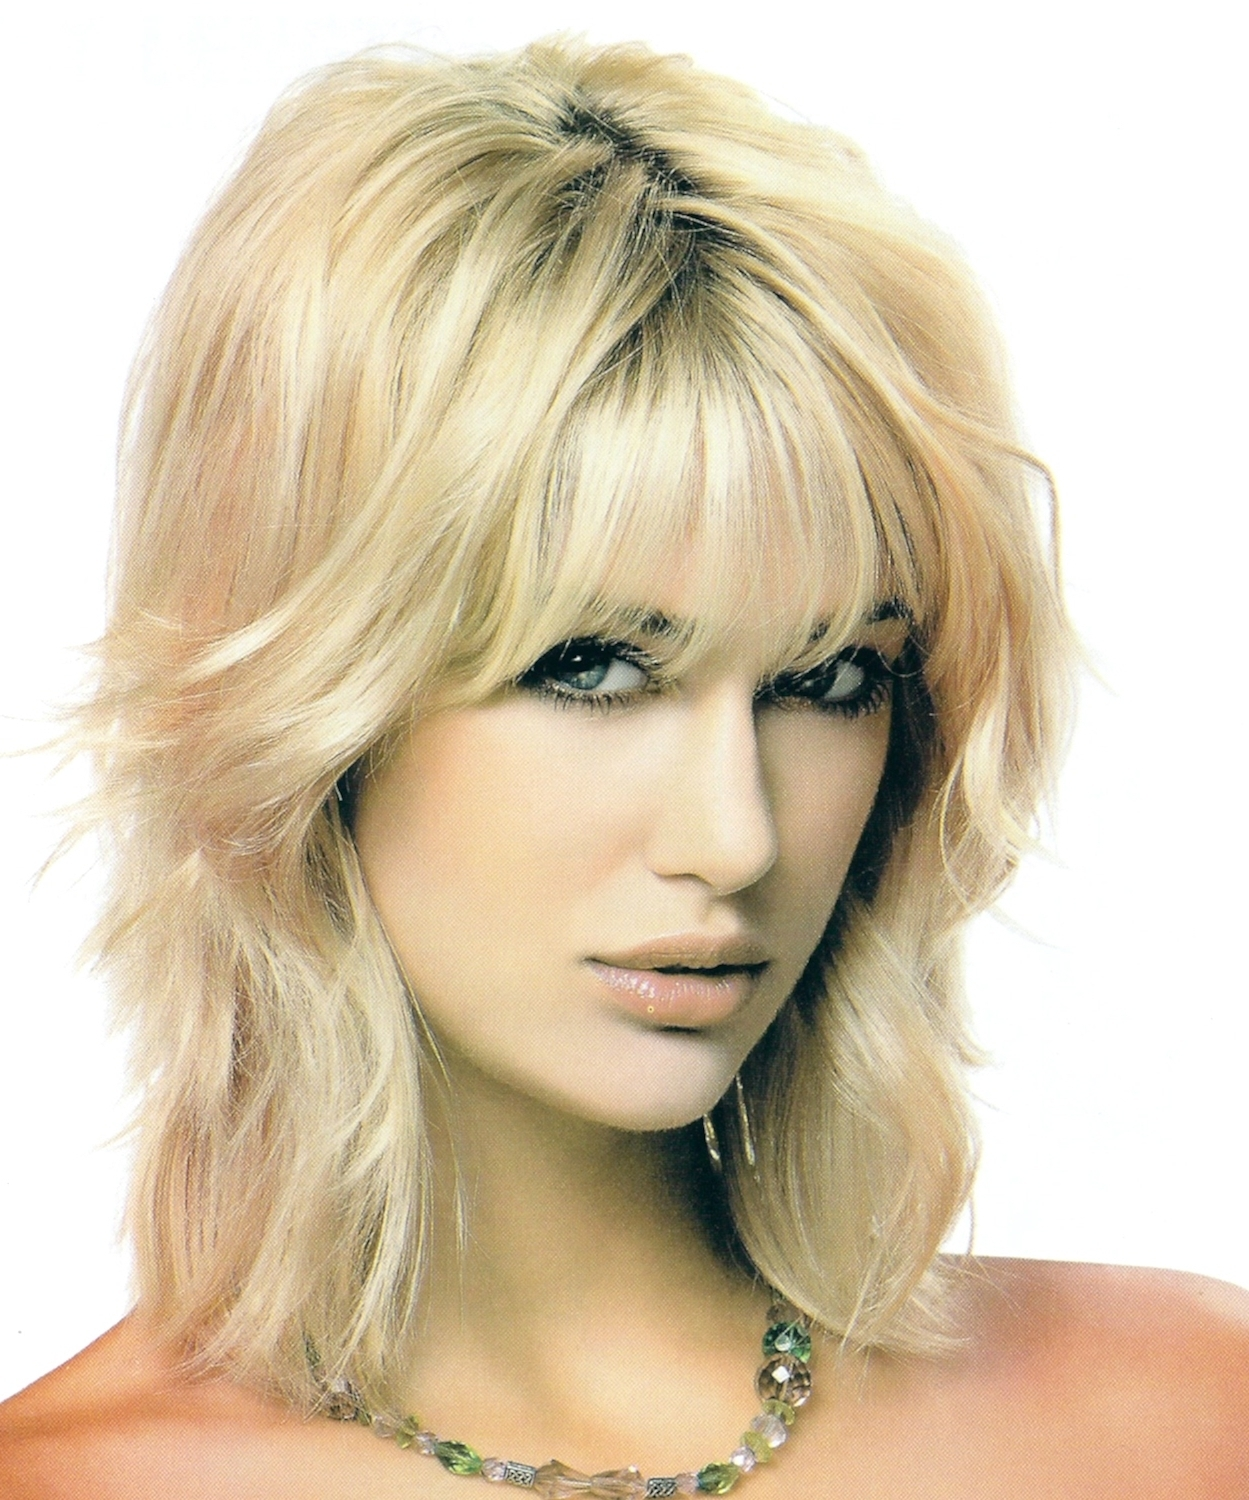 Trending Long Shag Hairstyles Ideas On Pinterest Choppy For Best With Regard To 2017 Shaggy Womens Hairstyles (View 4 of 15)